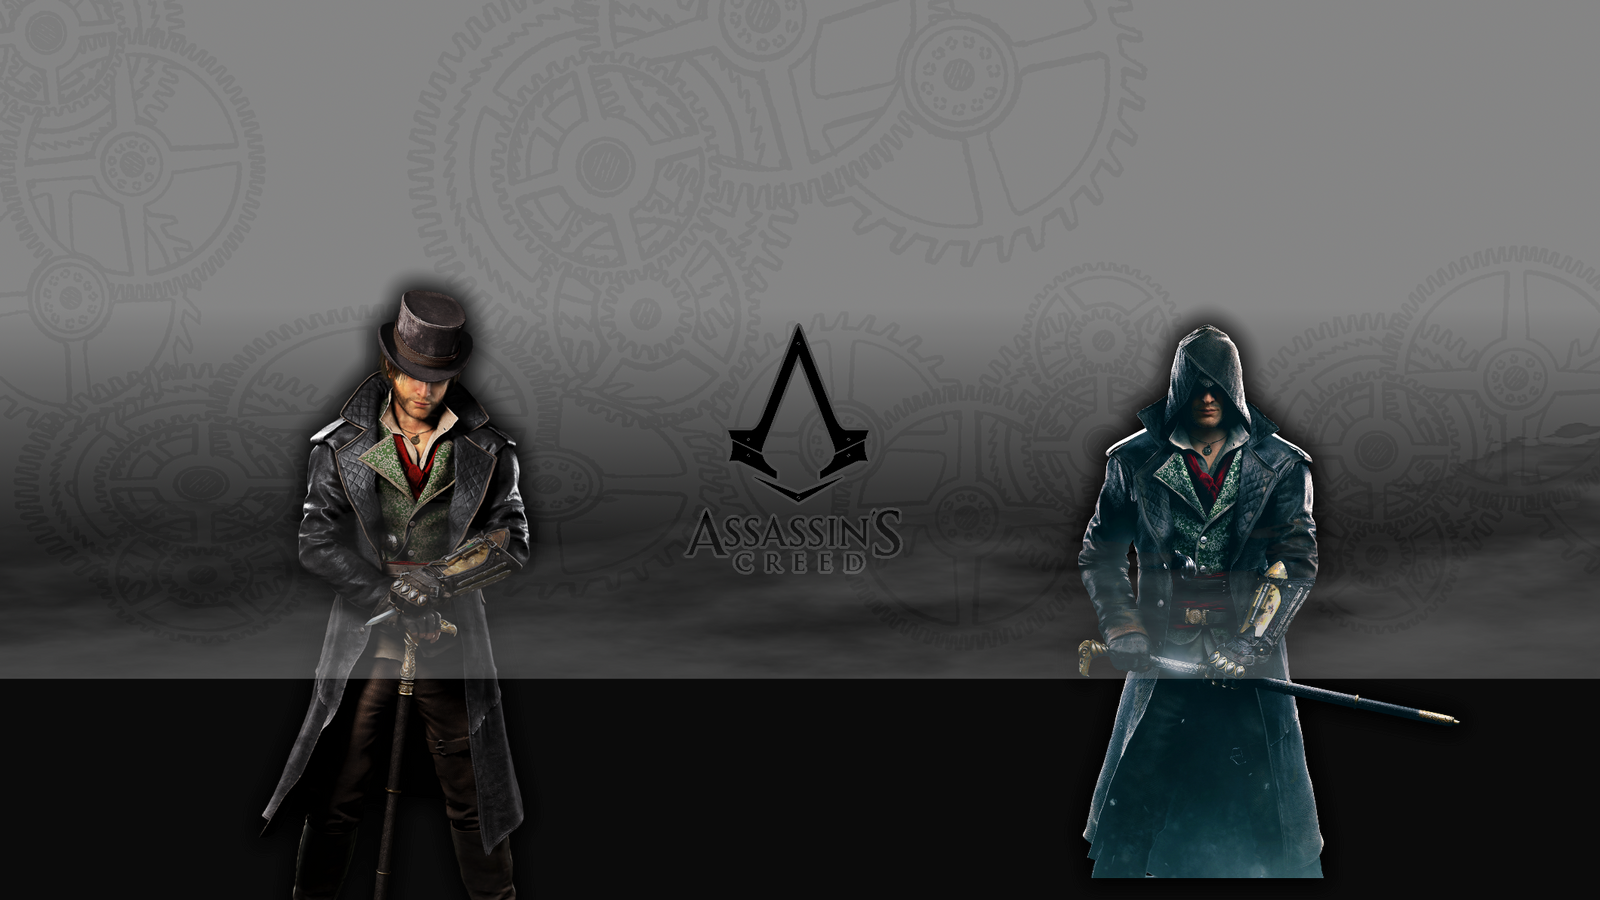 Assassins Creed Syndicate Youtube Channel Art By Thefallengamers